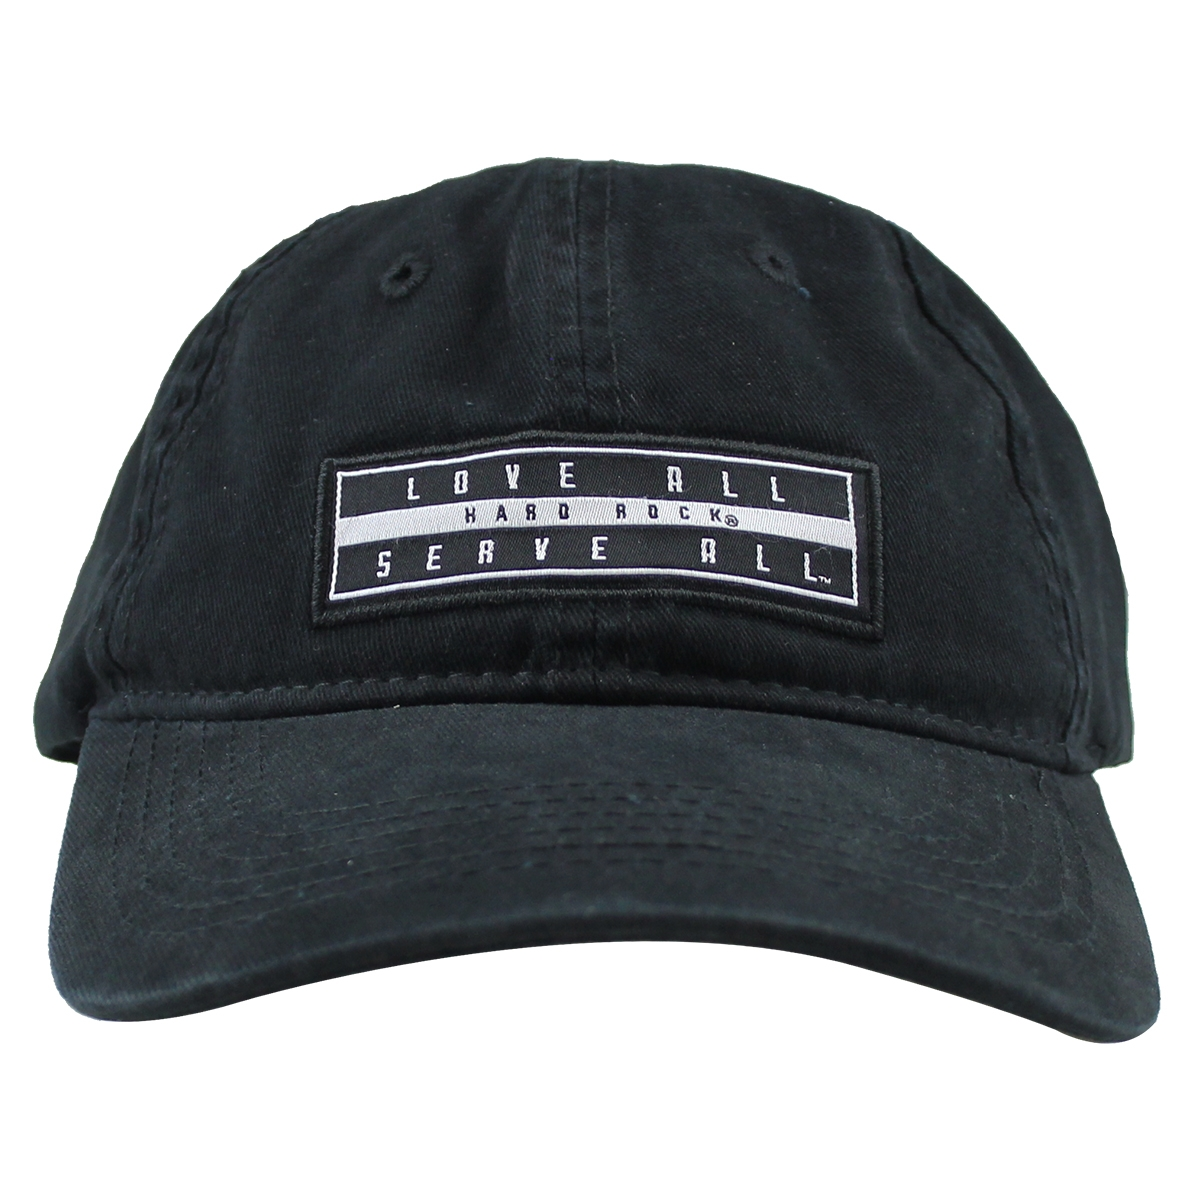 Mantra Love All Hat Black 0